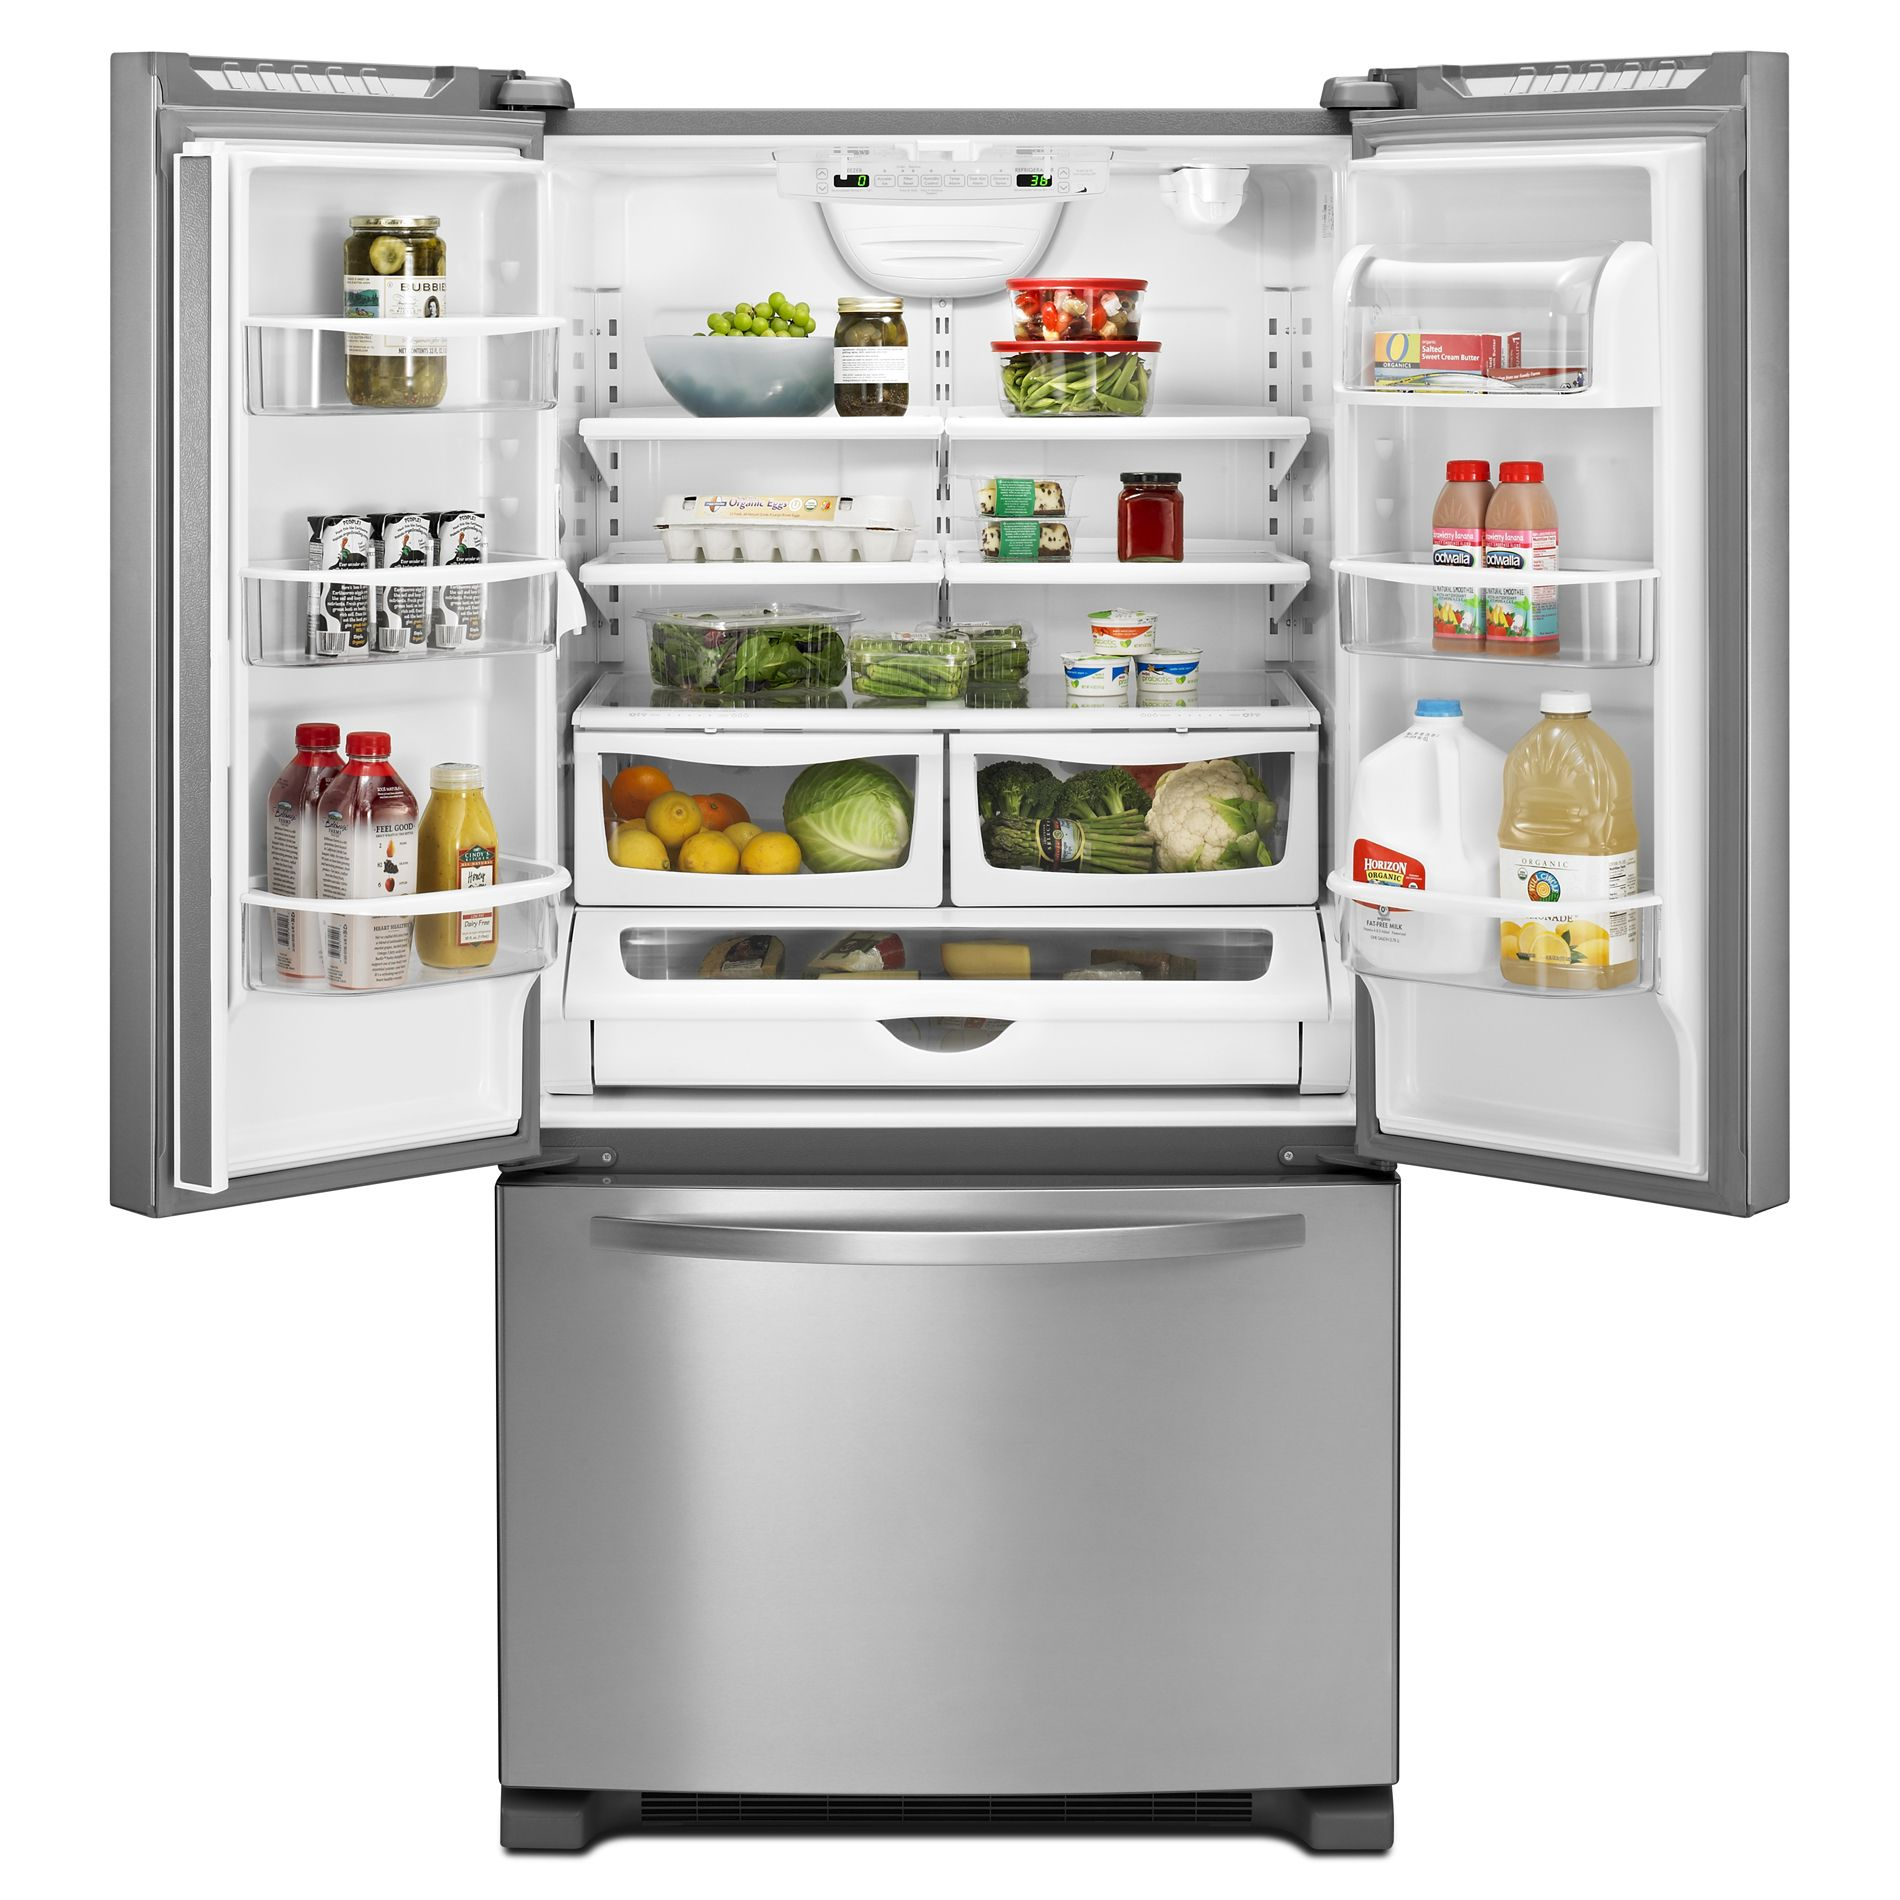 Kenmore 24.8 cu. ft. French-Door Bottom-Freezer Refrigerator